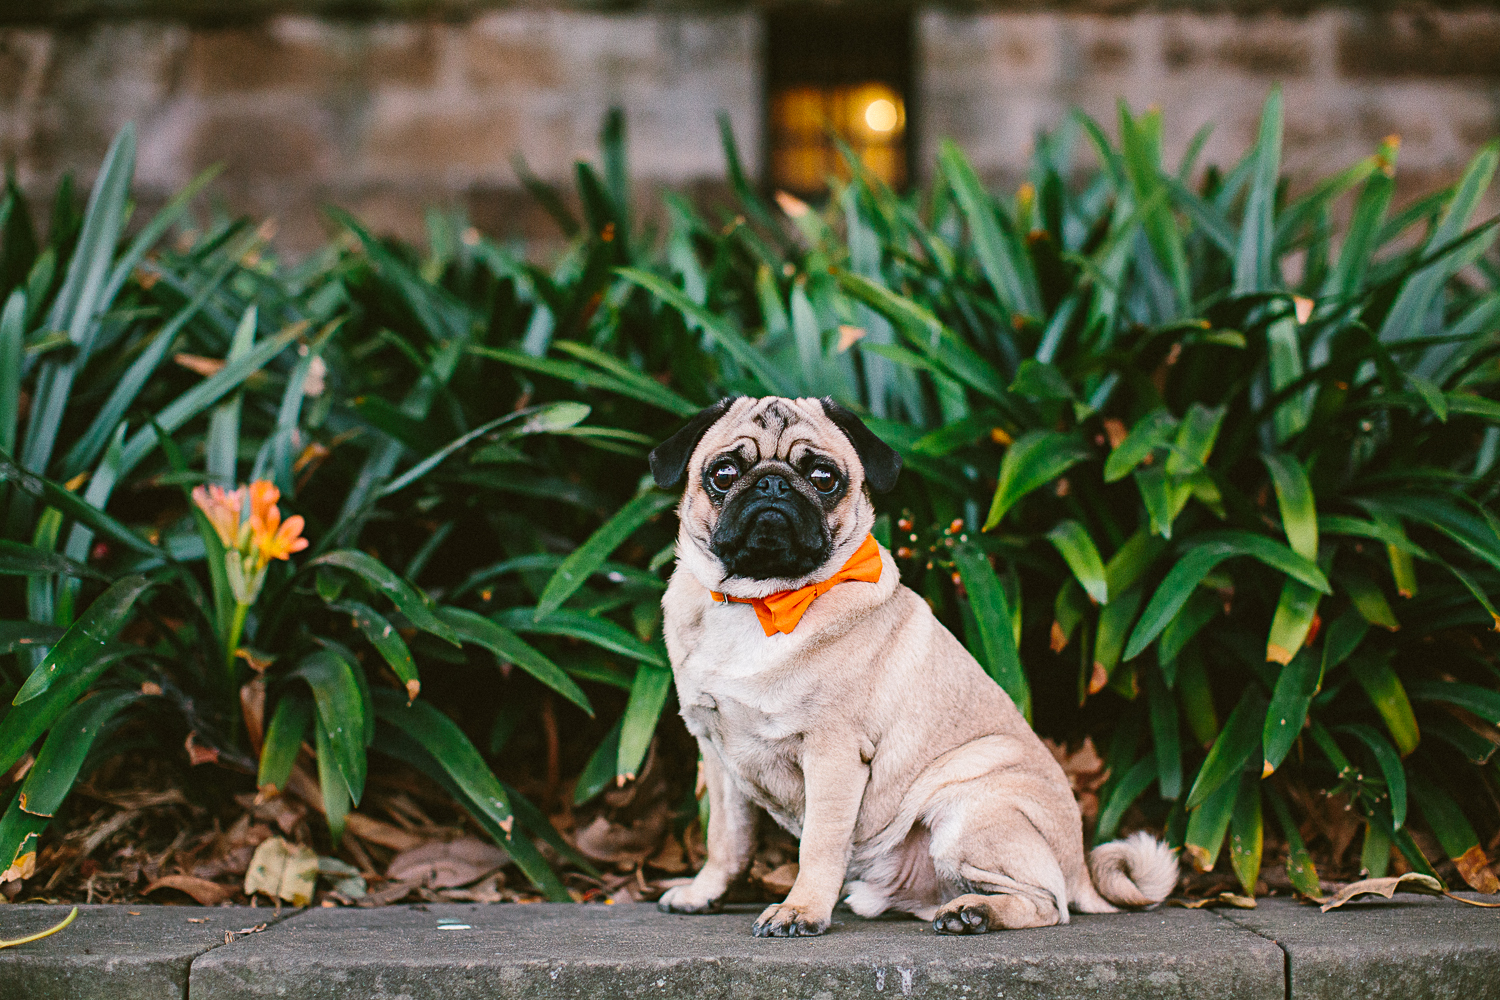 twoguineapigs_pet_photography_oh_jaffa_pugs_bow_ties_collars_ORANGE_1500-17.jpg